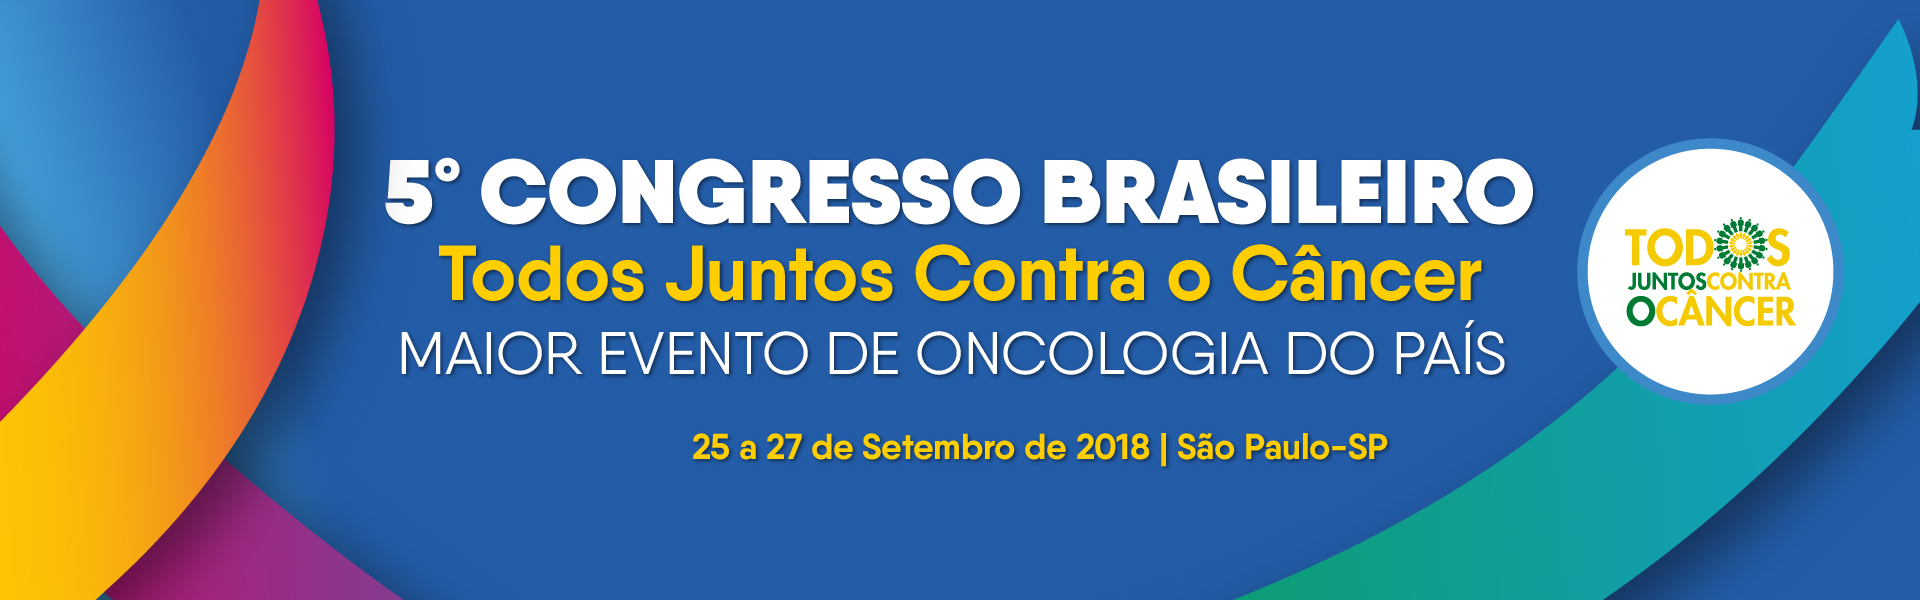 banner-site-padrao